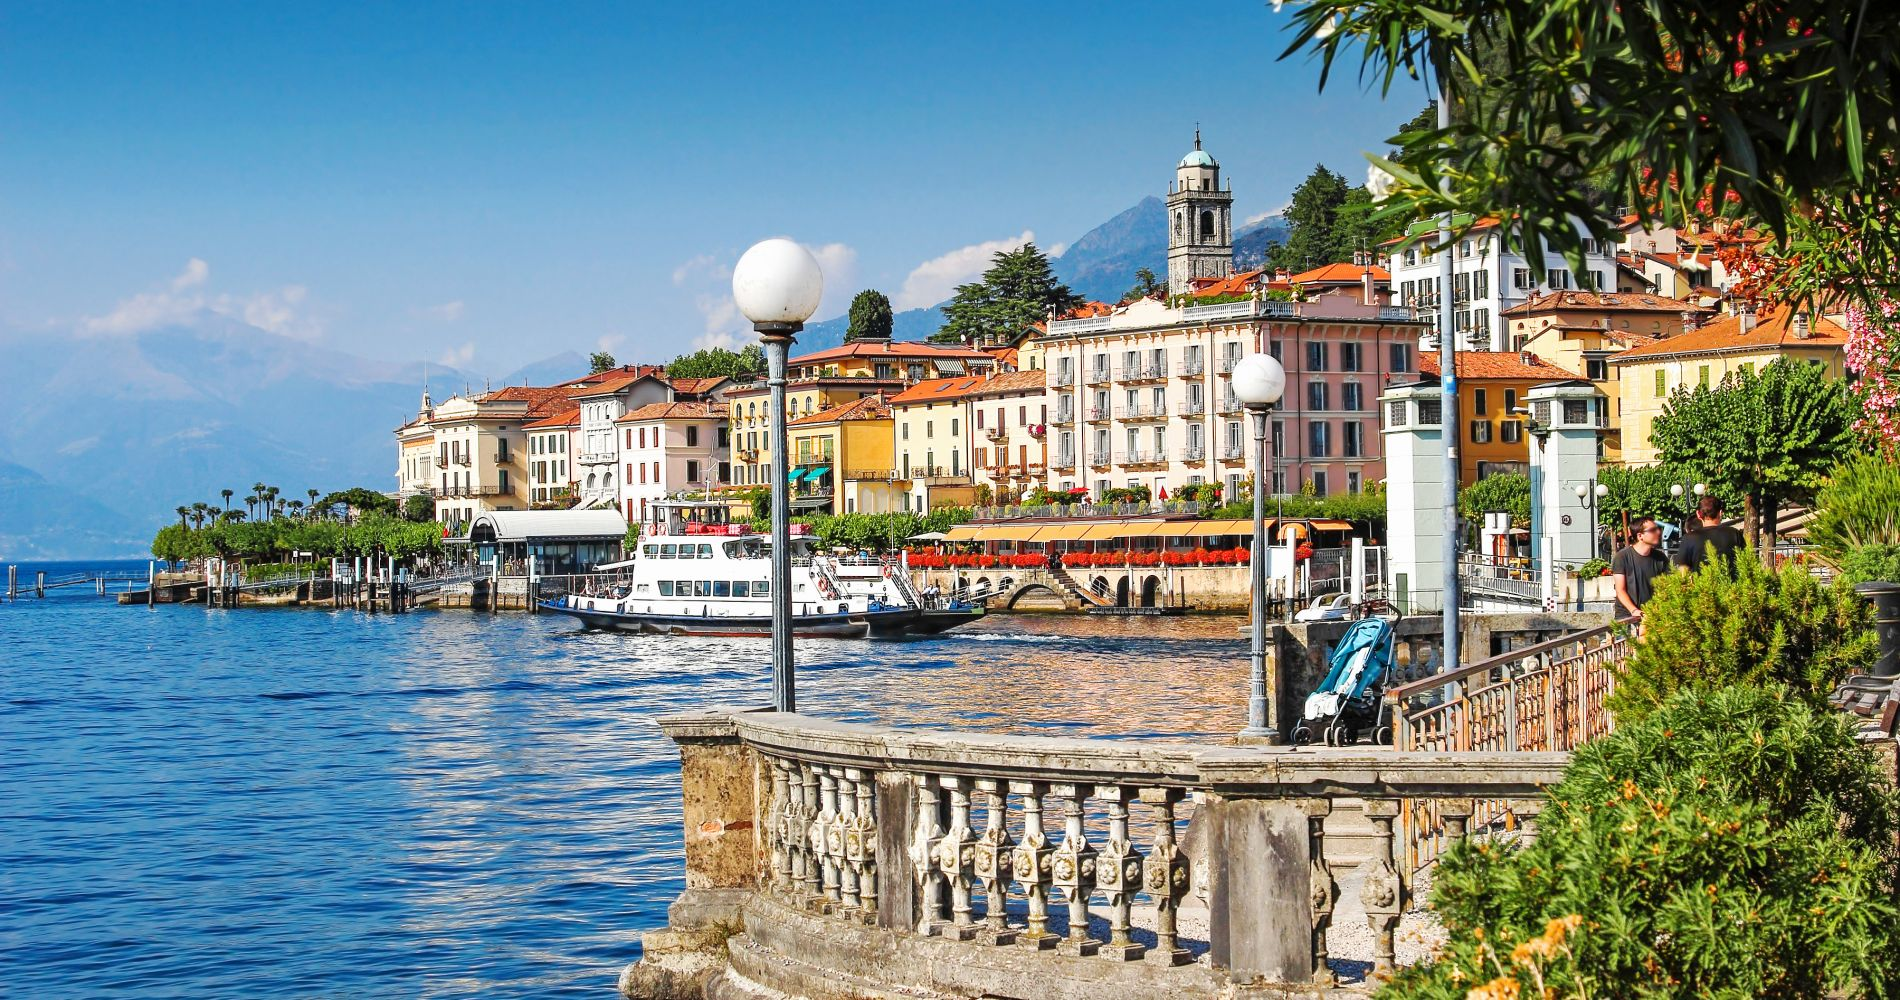 Lake Como with Bellagio and Lugano Day Trip from Milan for Two